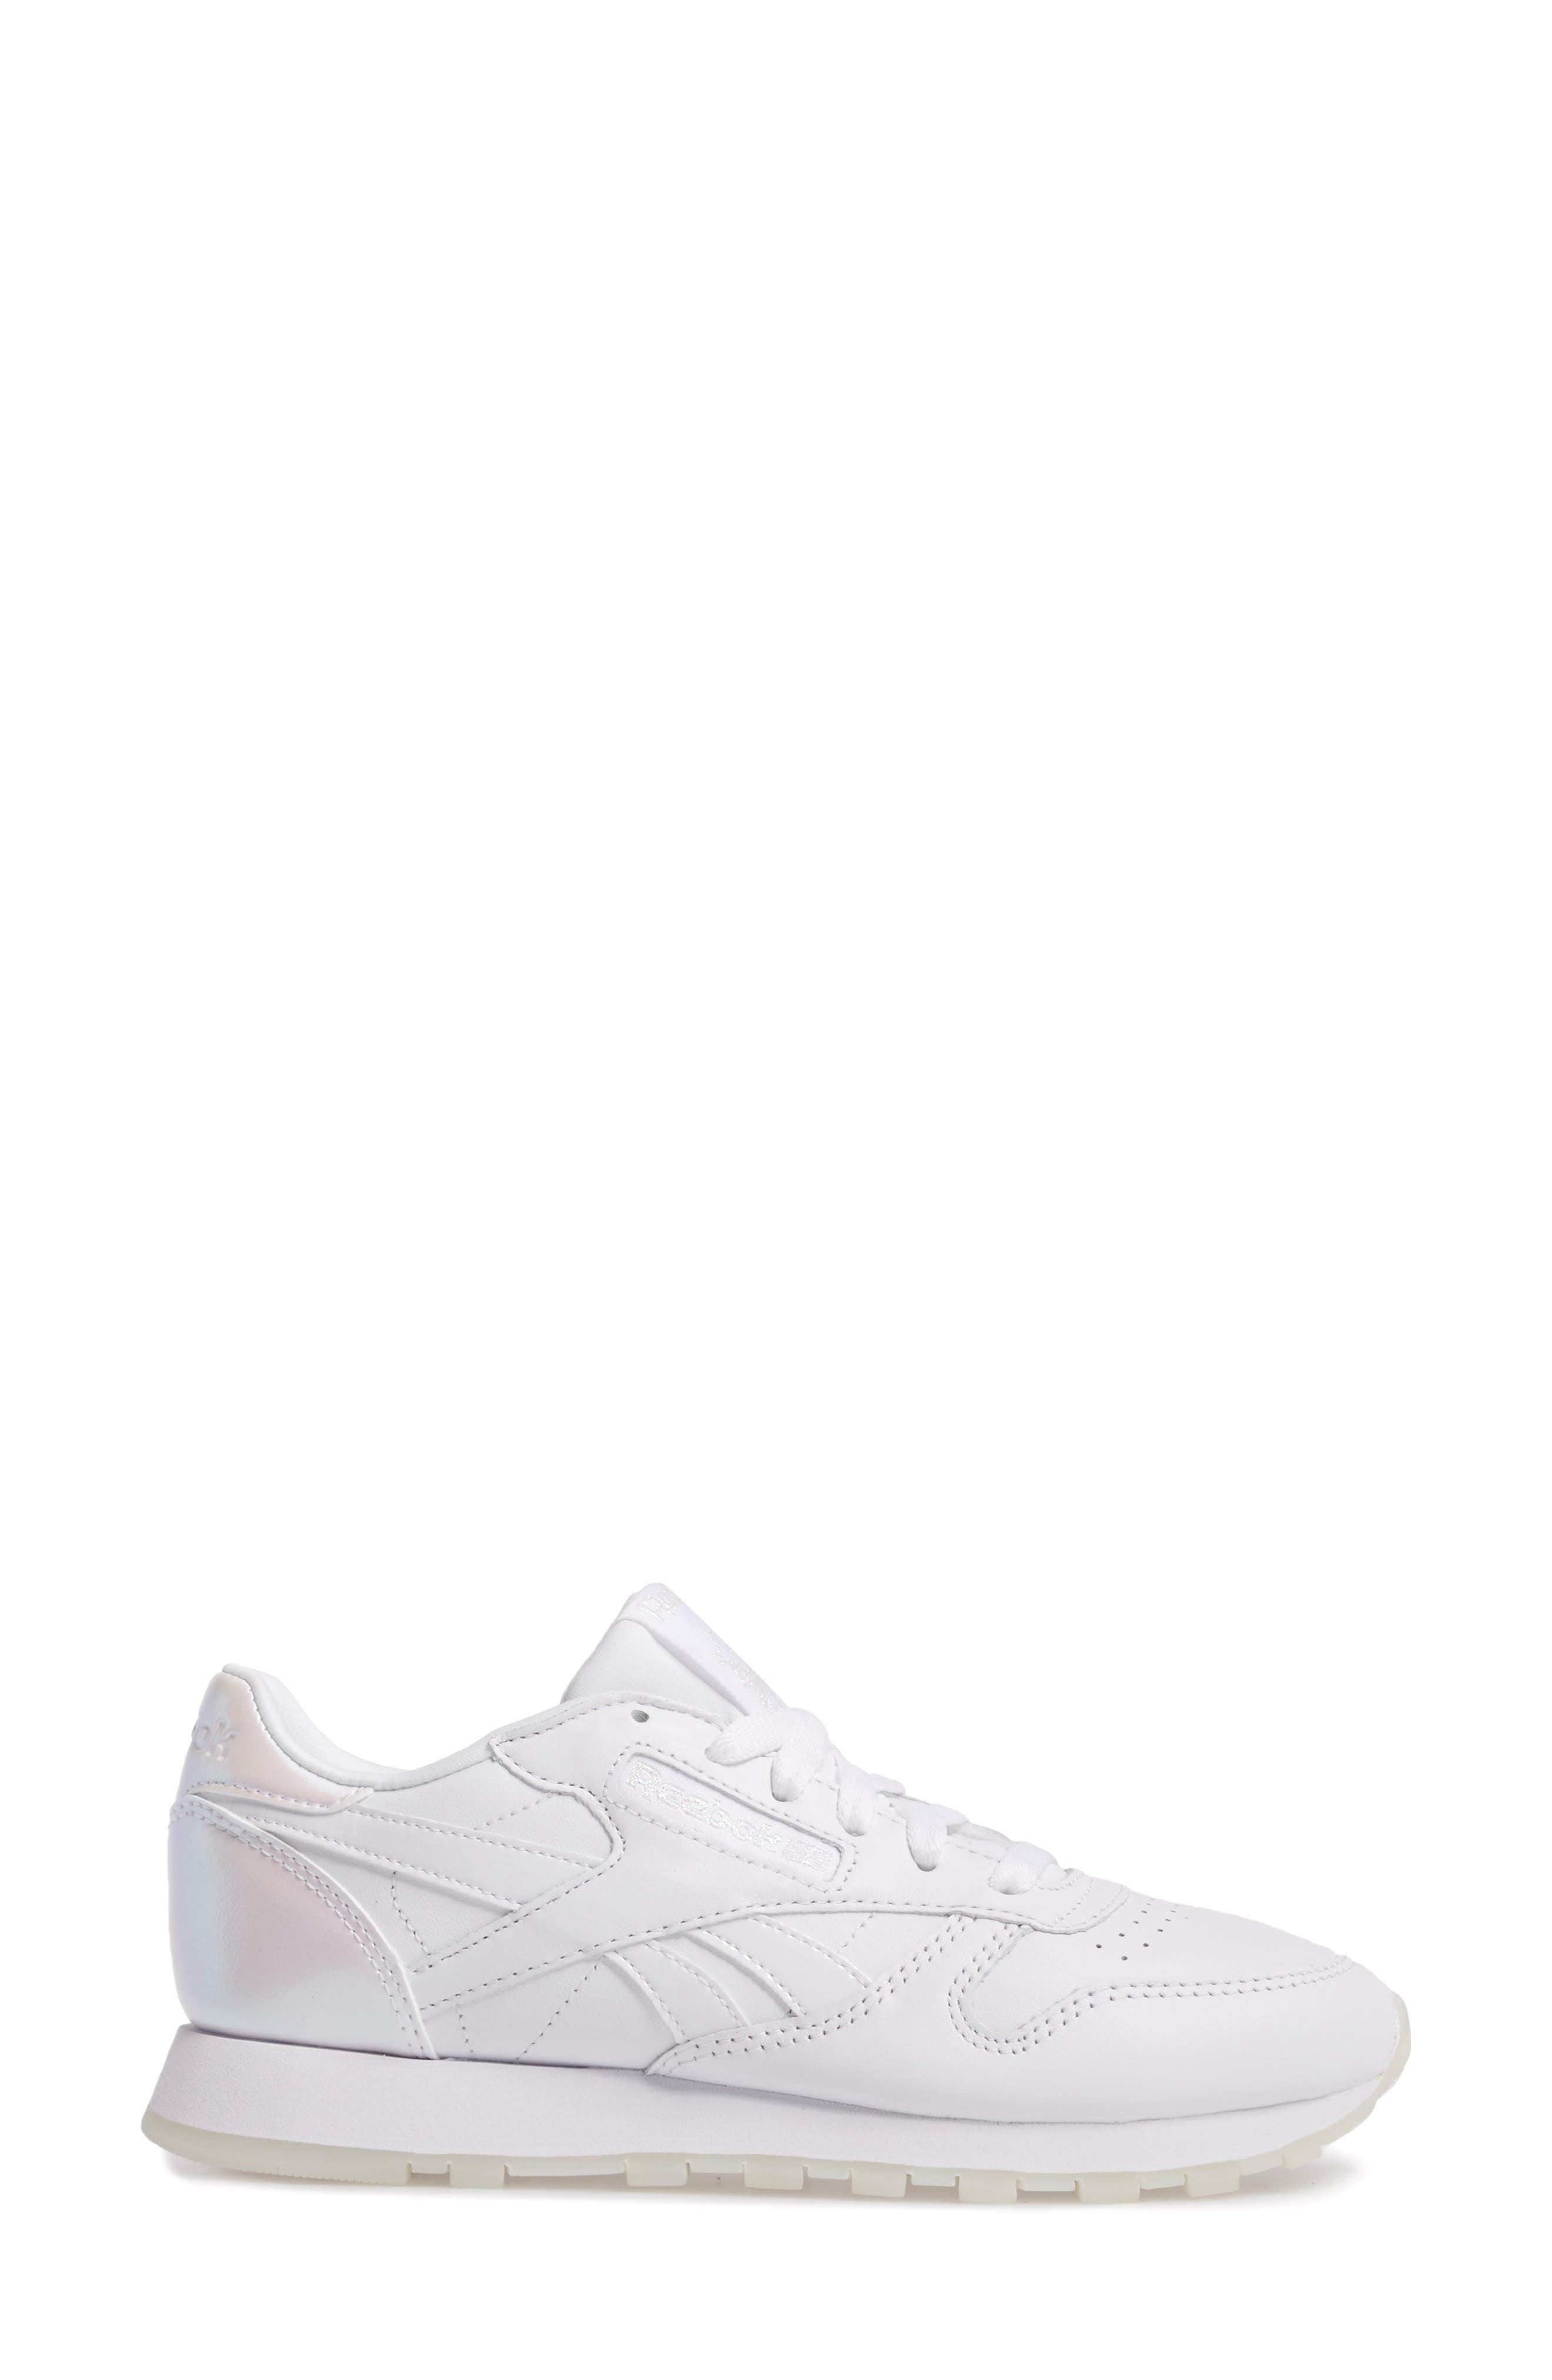 Classic Leather Sneaker,                             Alternate thumbnail 3, color,                             White/ White/ Ice Pearl